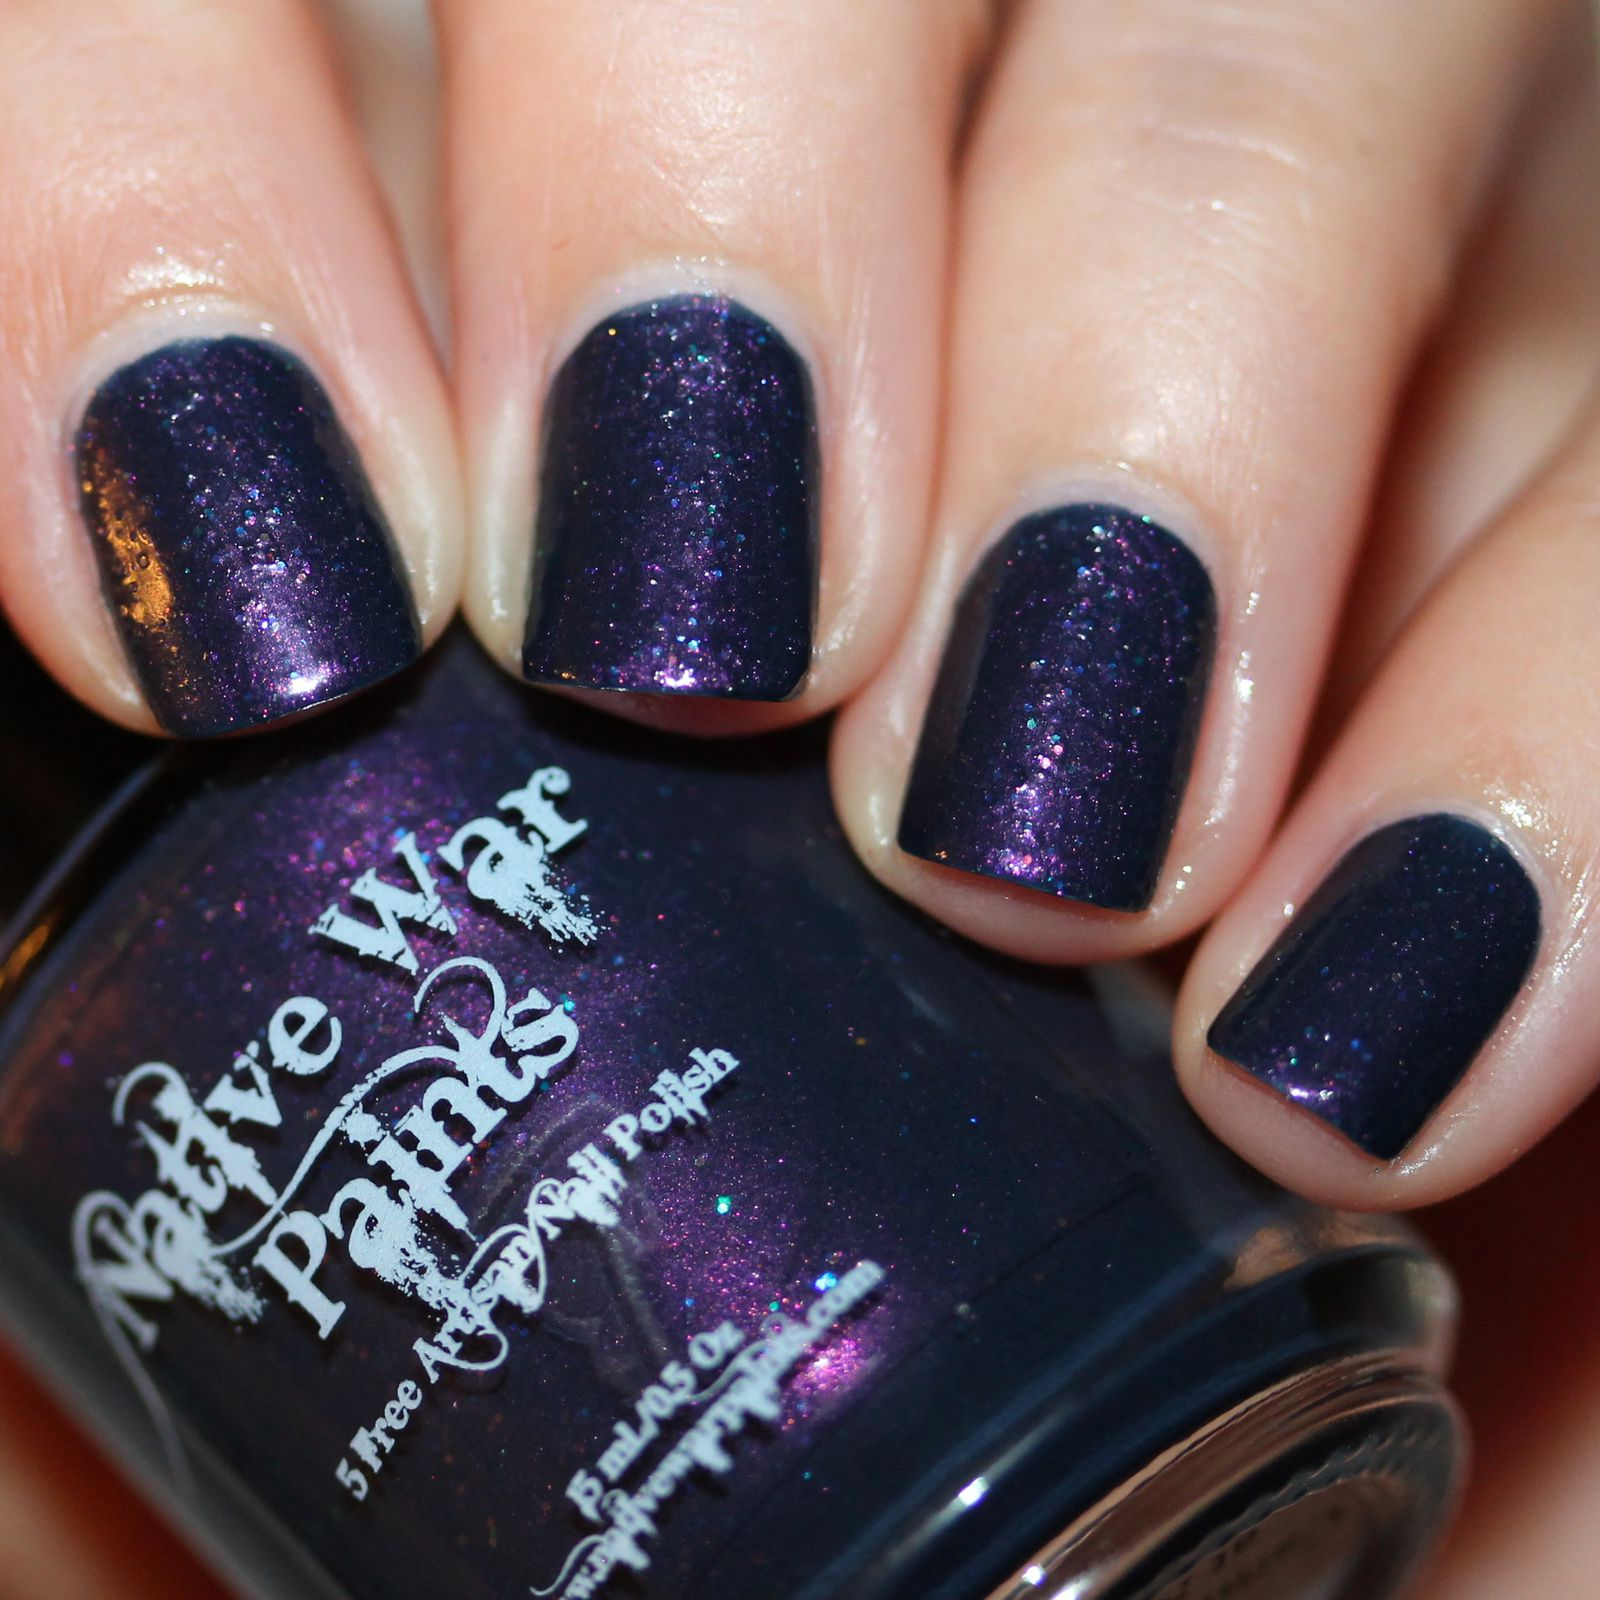 Native War Paints Carnival Lights at Night (2 coats, no top coat)